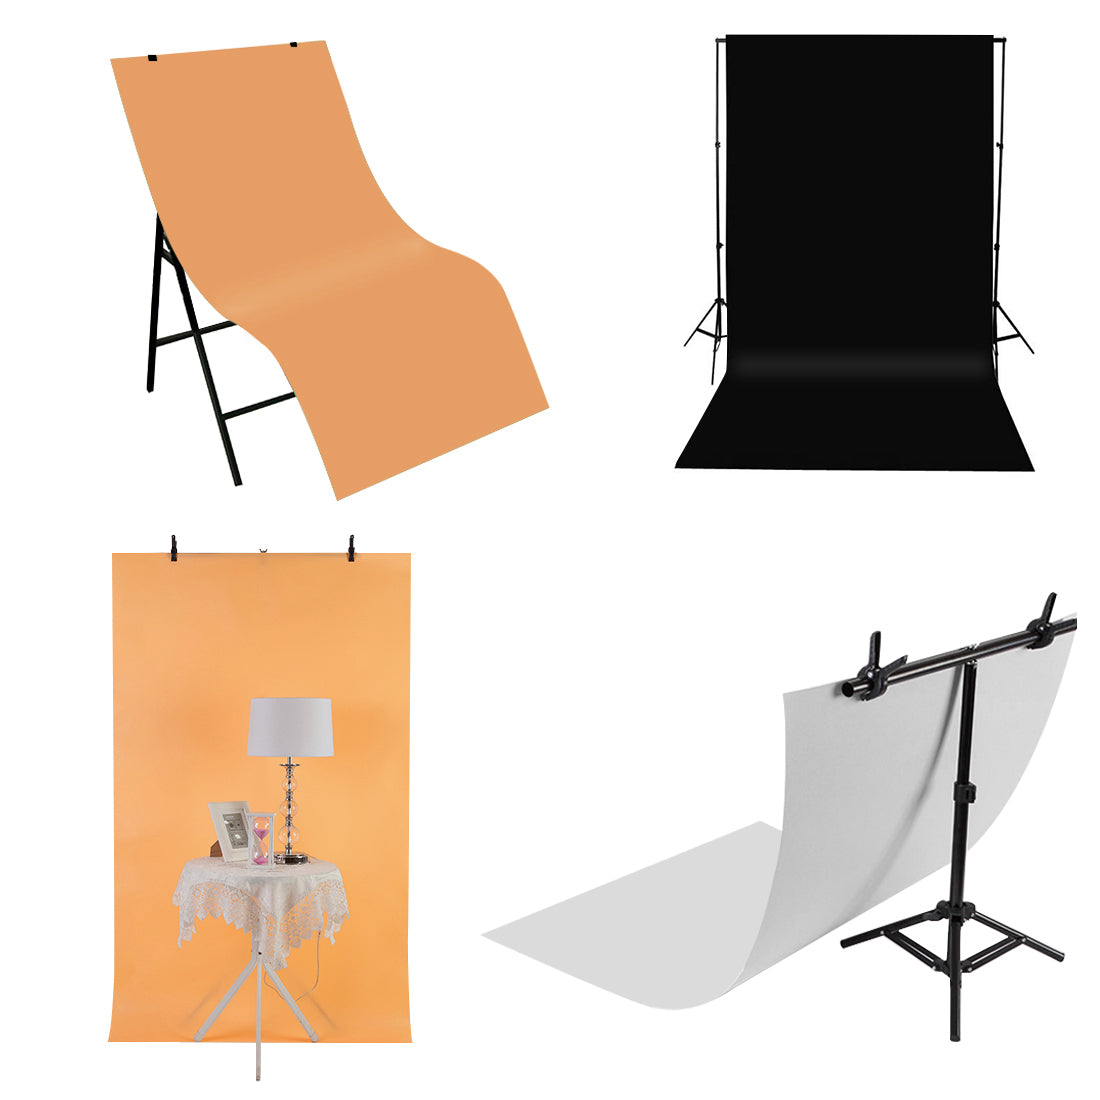 Photography Background PVC Paper Kits for Studio Tent Box, Size: 120cm x 60cm(White)